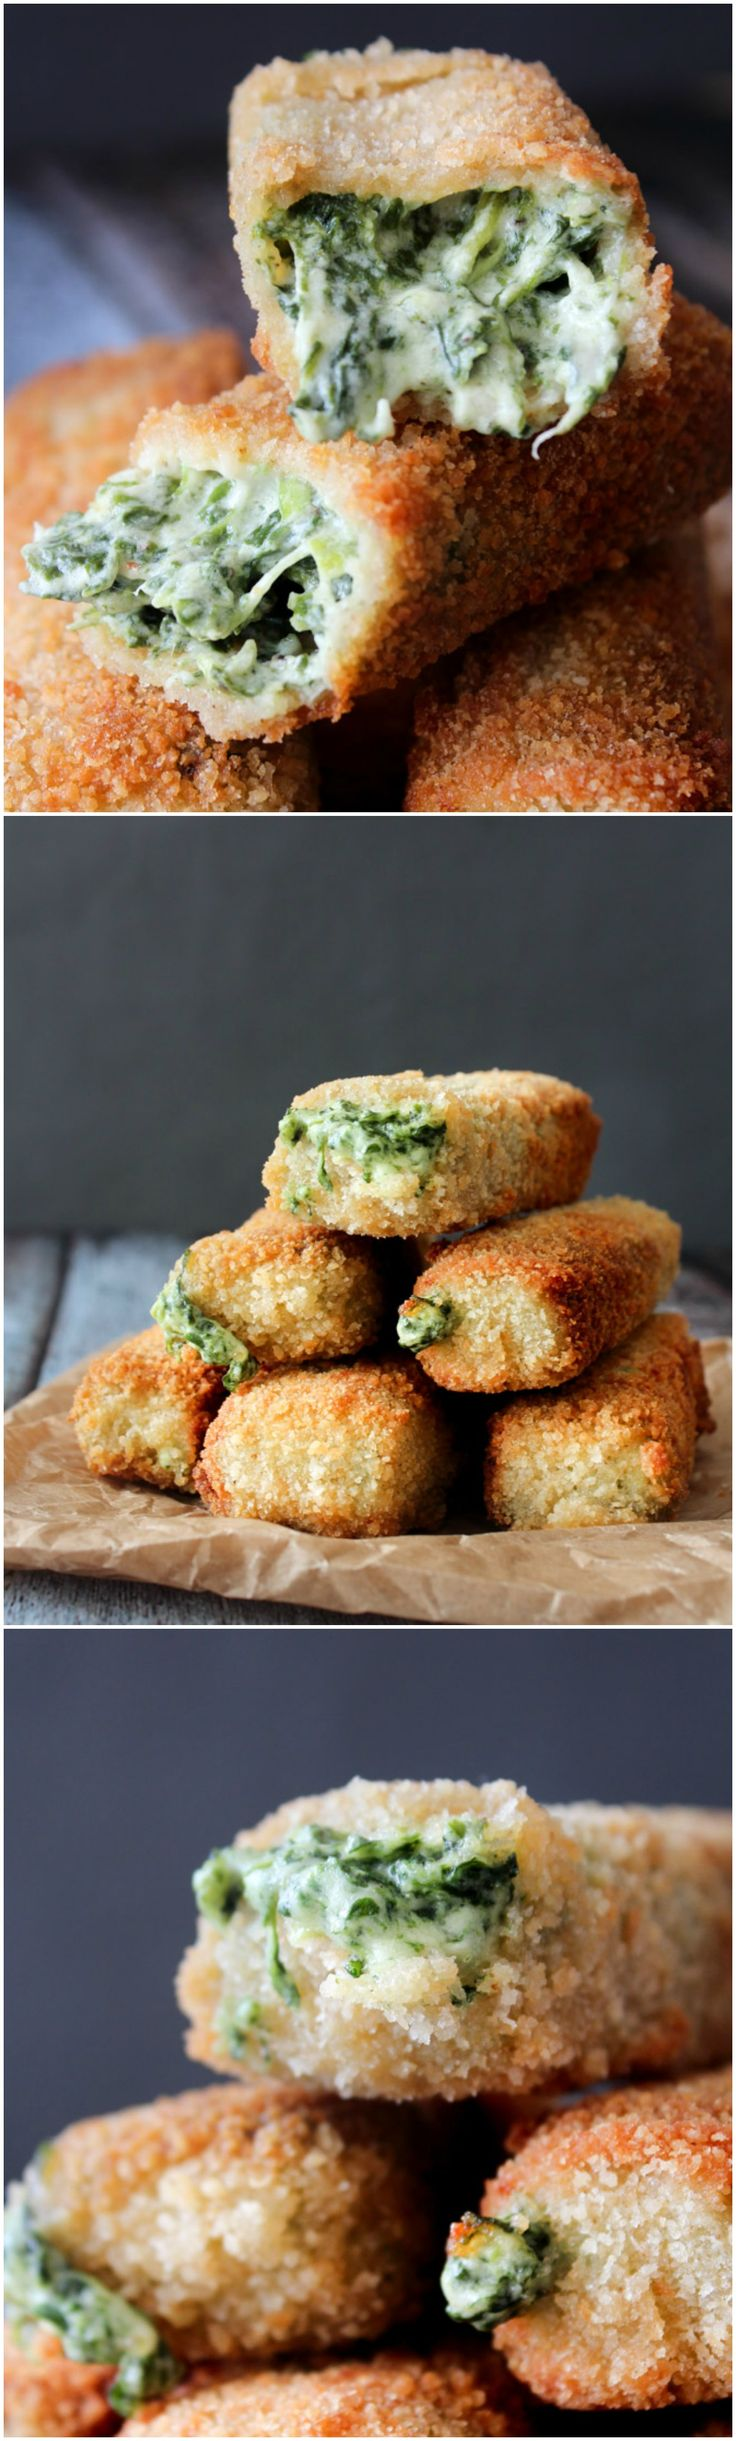 Spinach Dip Sticks - Mozzarella Sticks - Cheese Sticks - Spinach Dip - Cheese Dip - Cheese Snack - Party Food